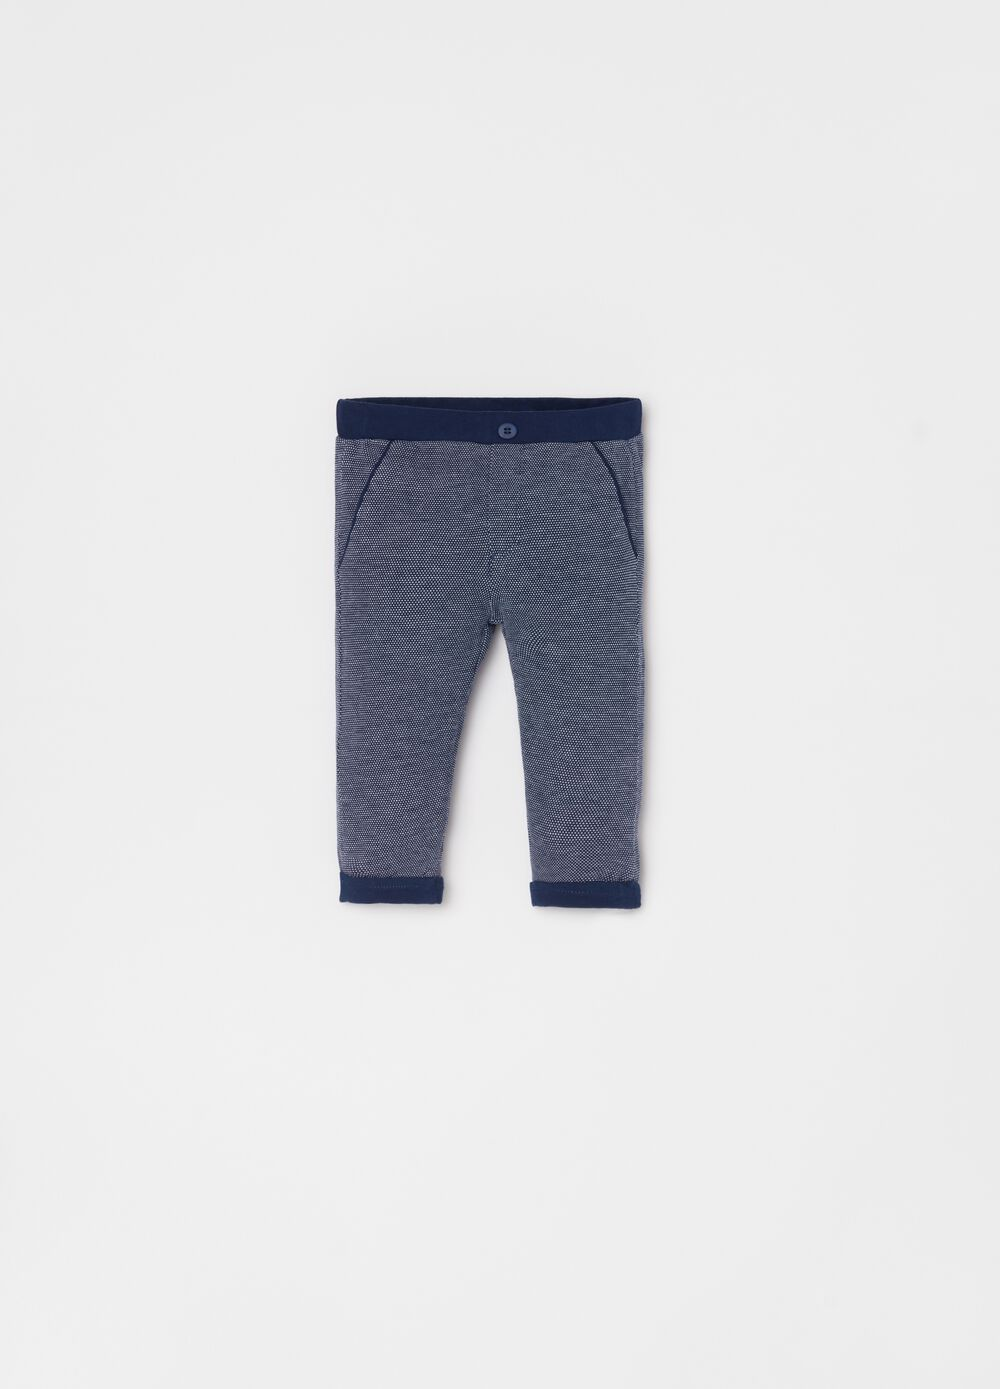 100% organic cotton piquet trousers